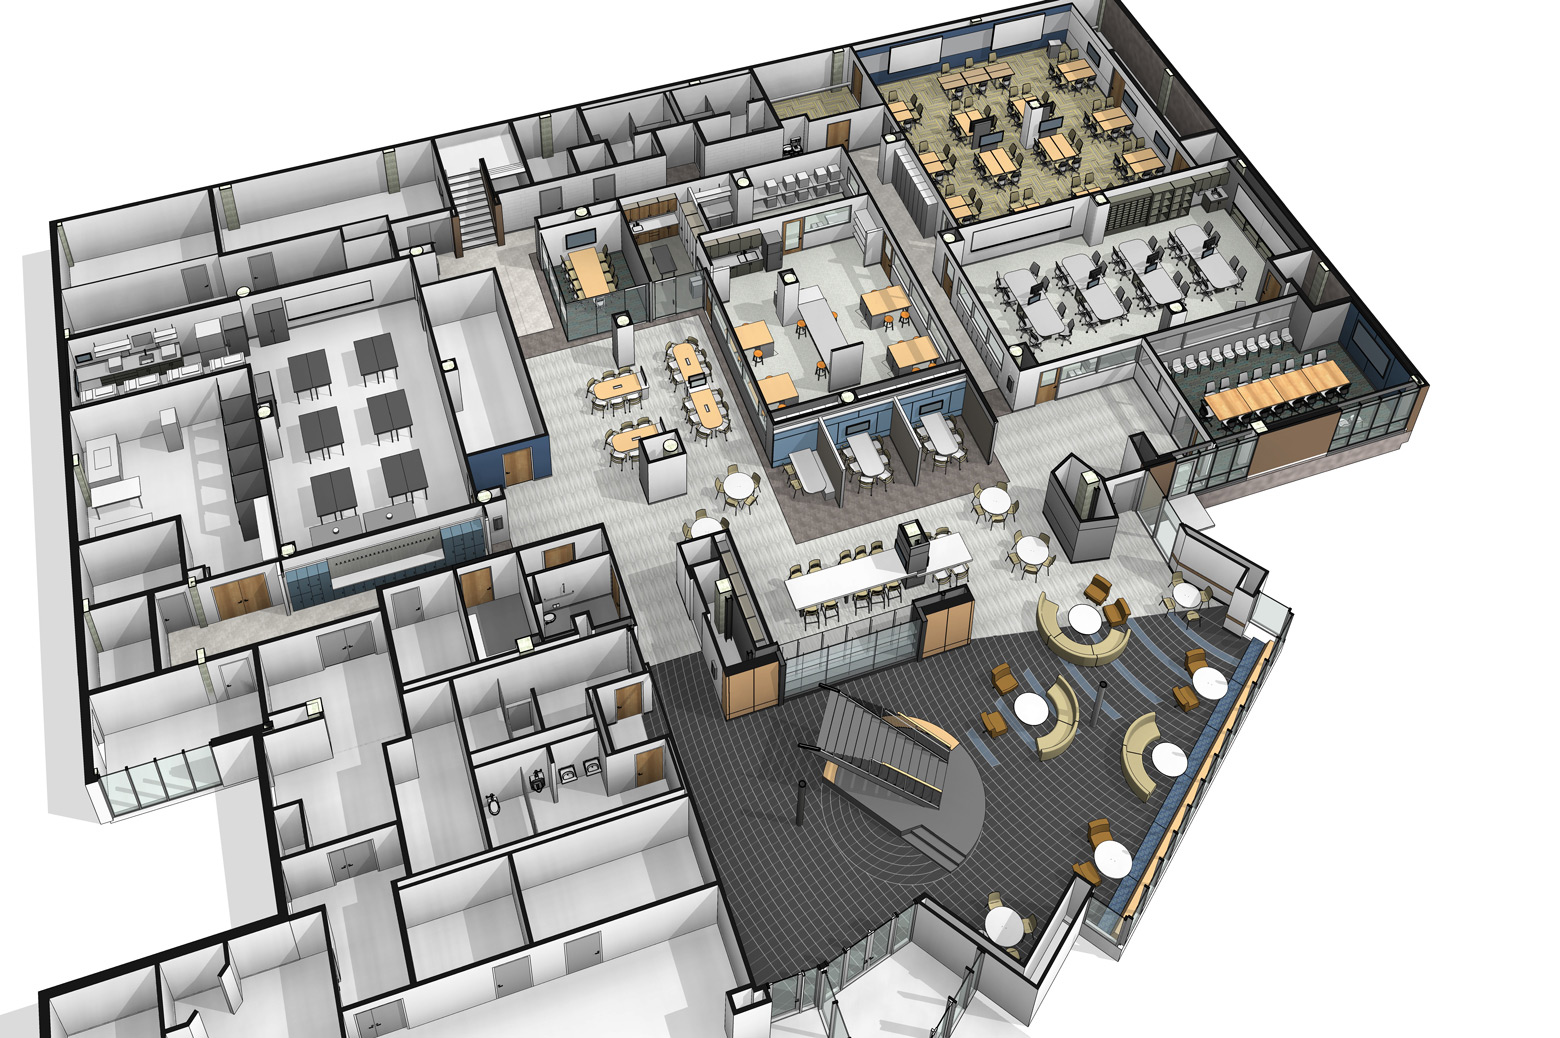 An overhead 3D rendering of the planned design space renovation.